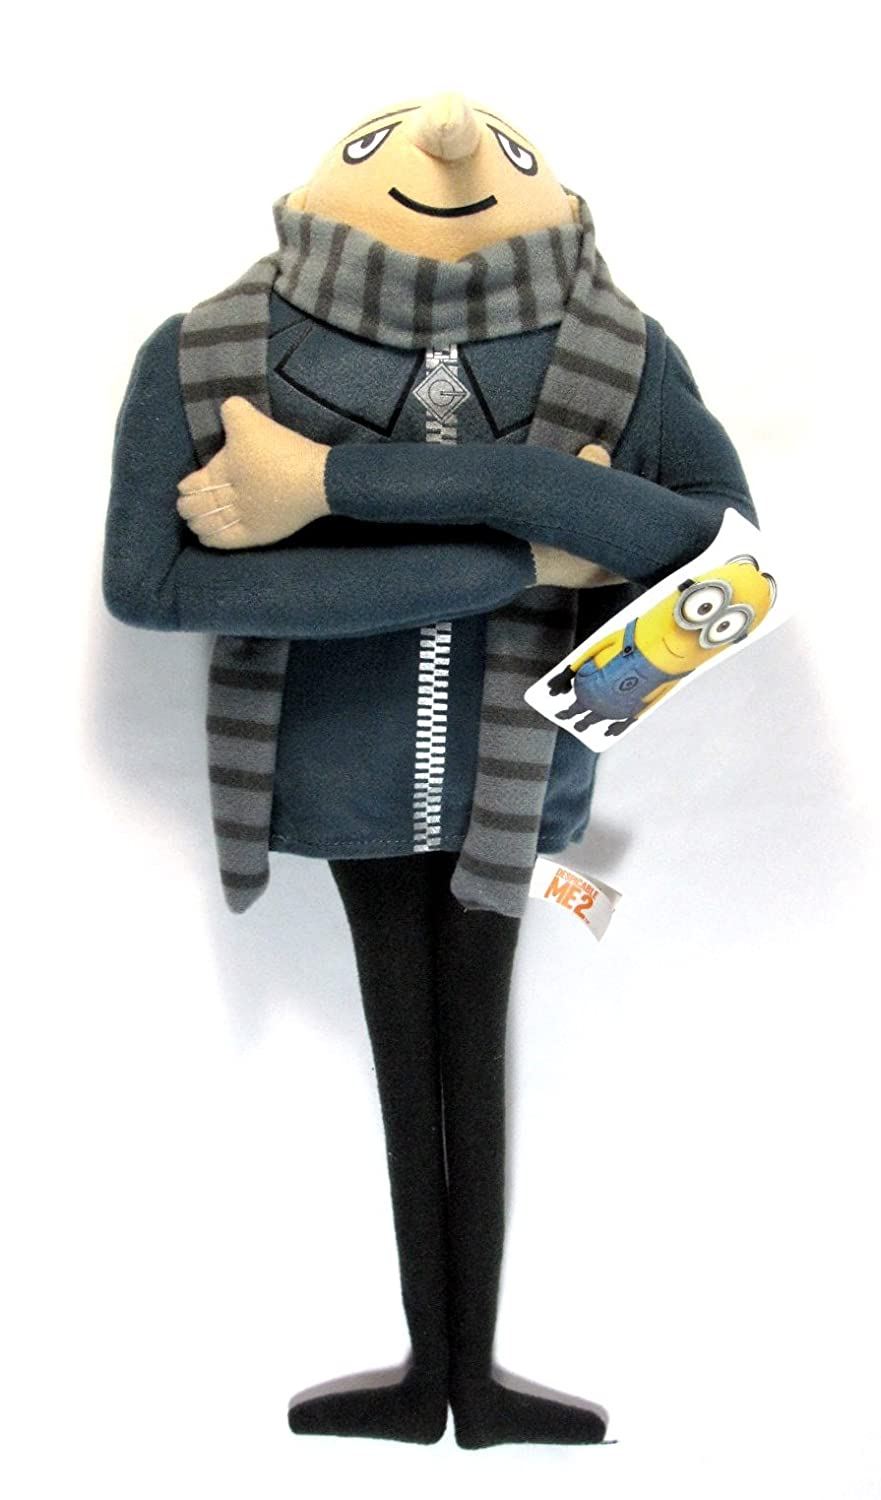 GRU Plush Doll